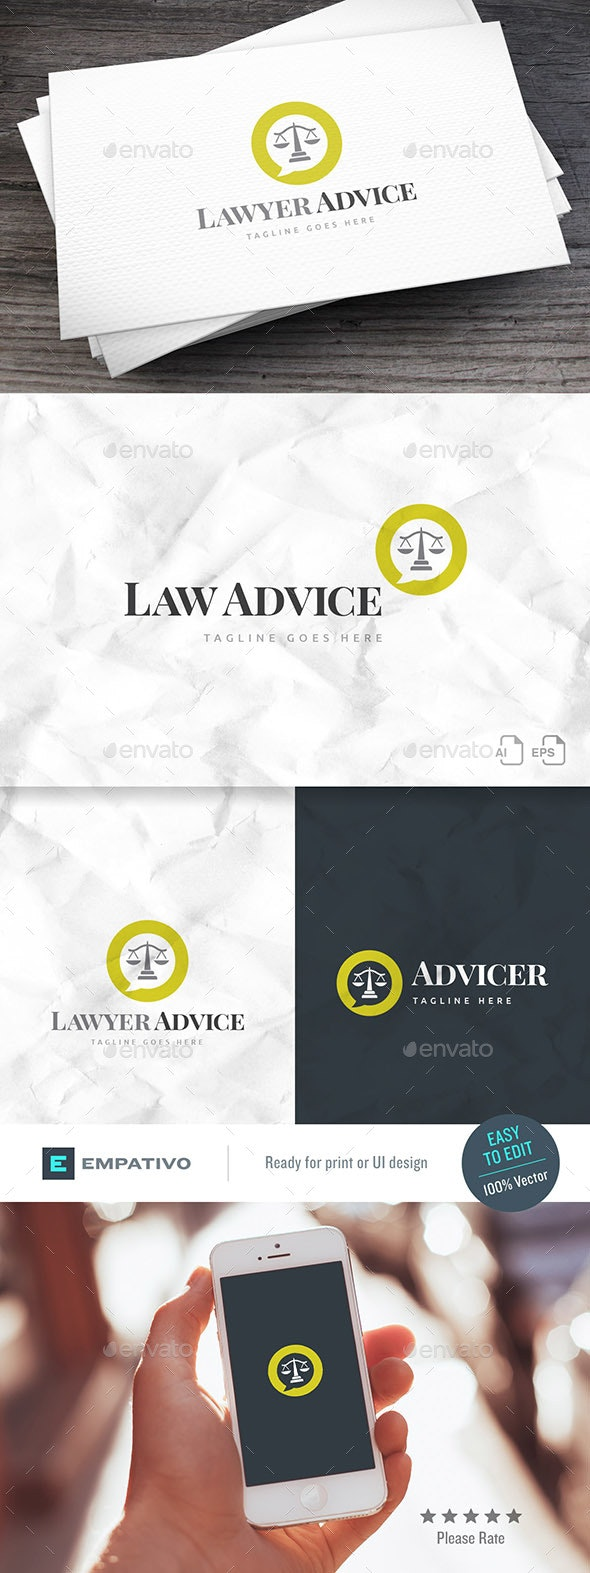 Lawyer Advice Logo Template - Symbols Logo Templates